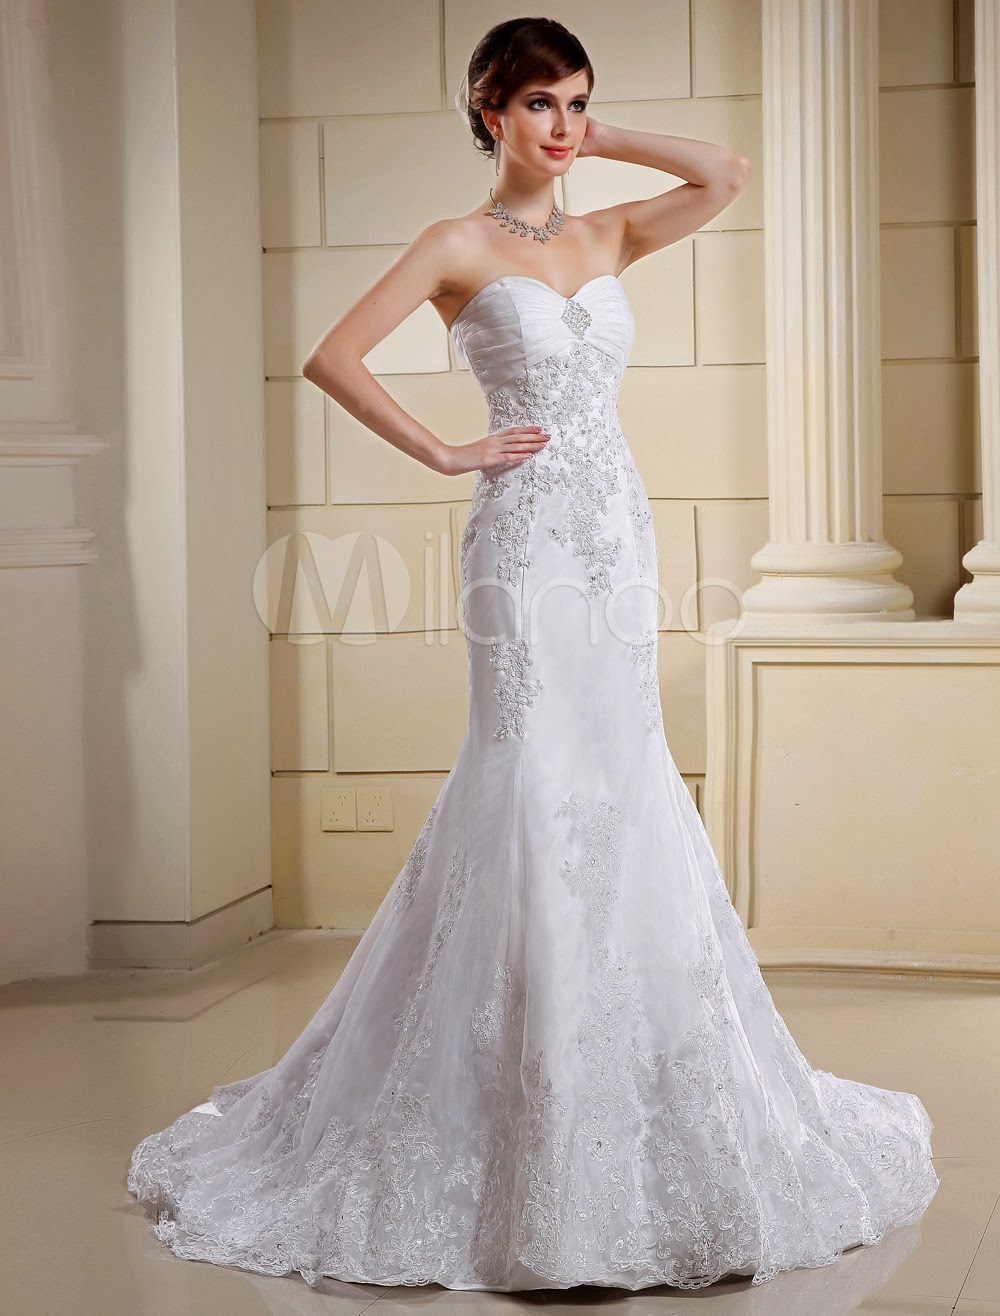 Lace Euro Style White Mermaid Trumpet Strapless Sweetheart Organza Satin Wedding Dress